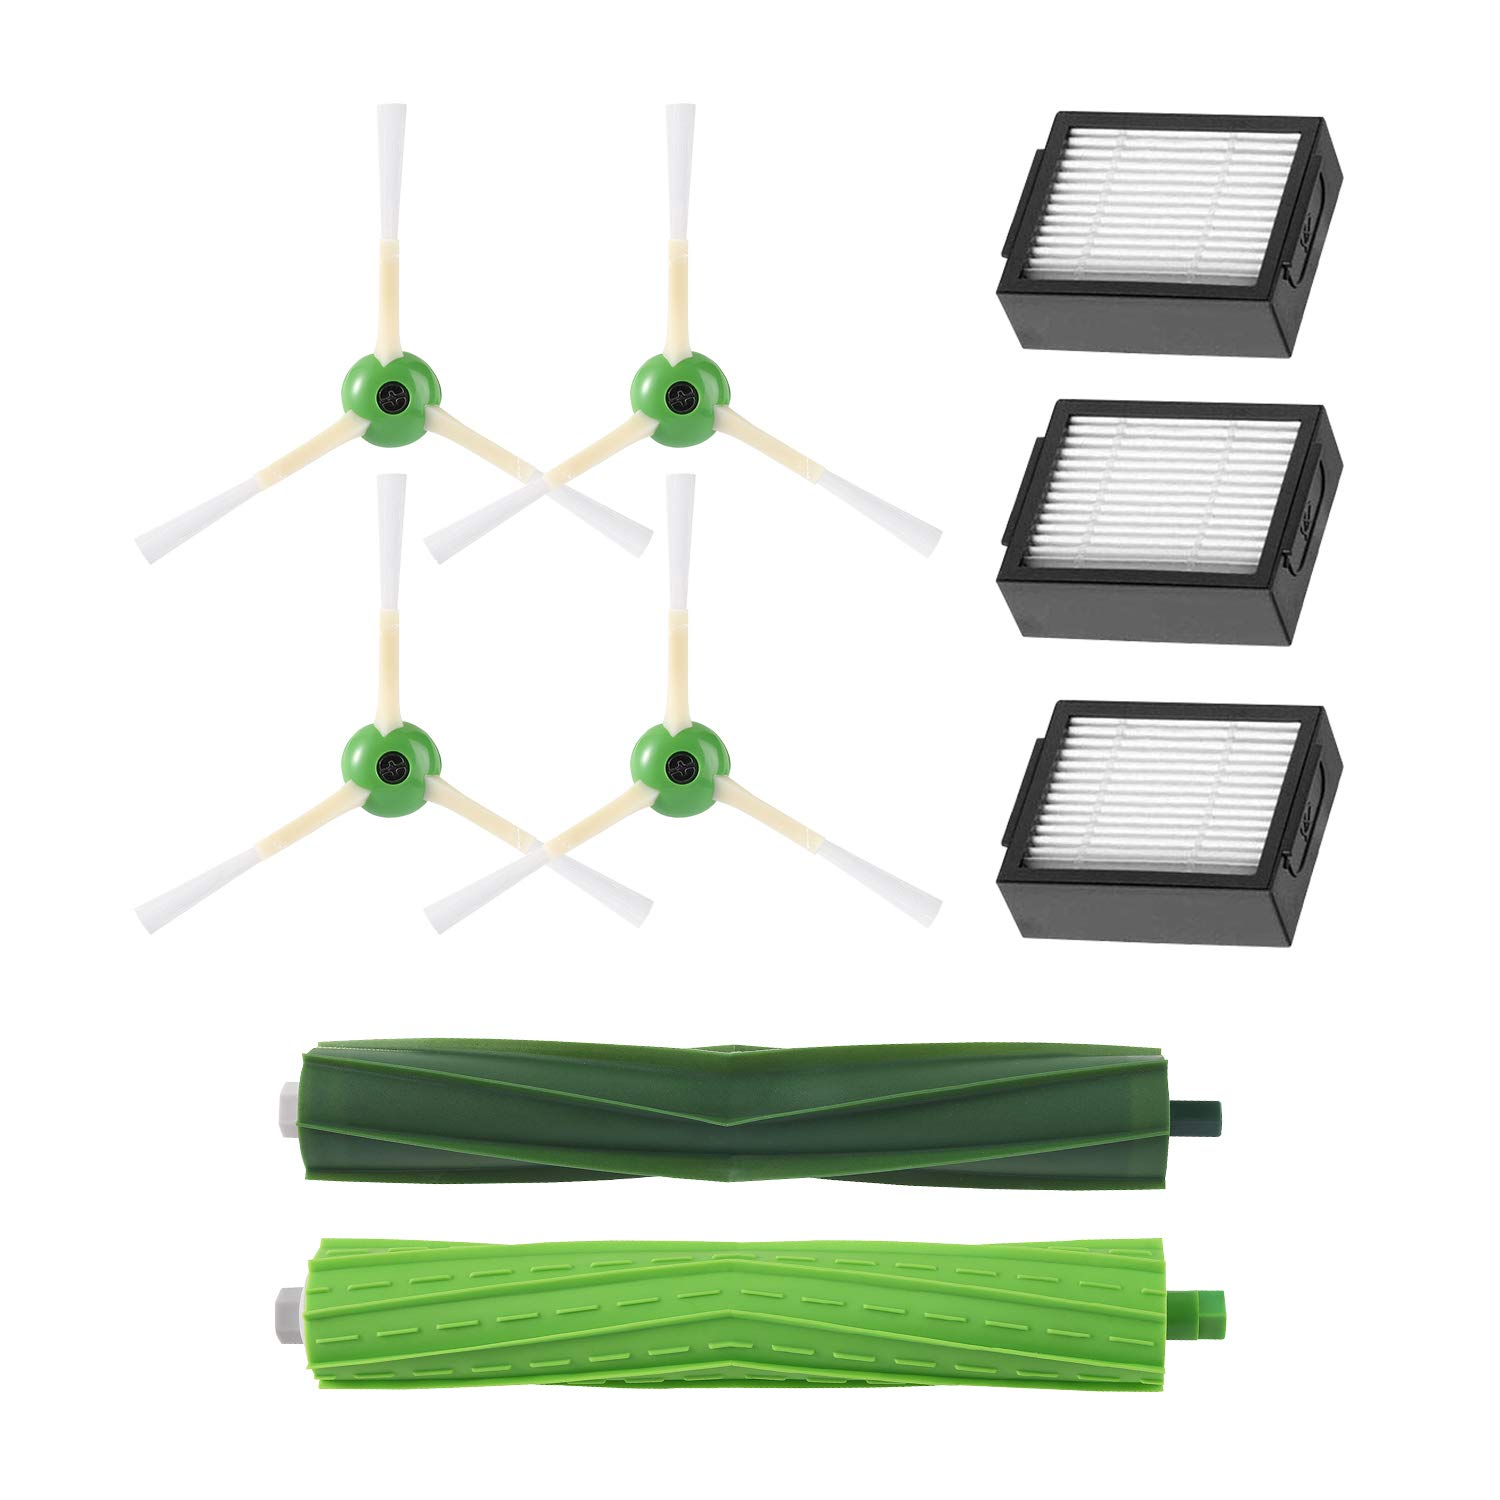 Replacement Parts for iRobot Roomba i7, i7+/Plus, E5, E6 and E7 Robot Vacuum Cleaner Replenishment Kit(3 High-Efficiency Filters, 4 Edge-Sweeping Brushes, 1 Set of Multi-Surface Rubber Brushes) by Alonyi